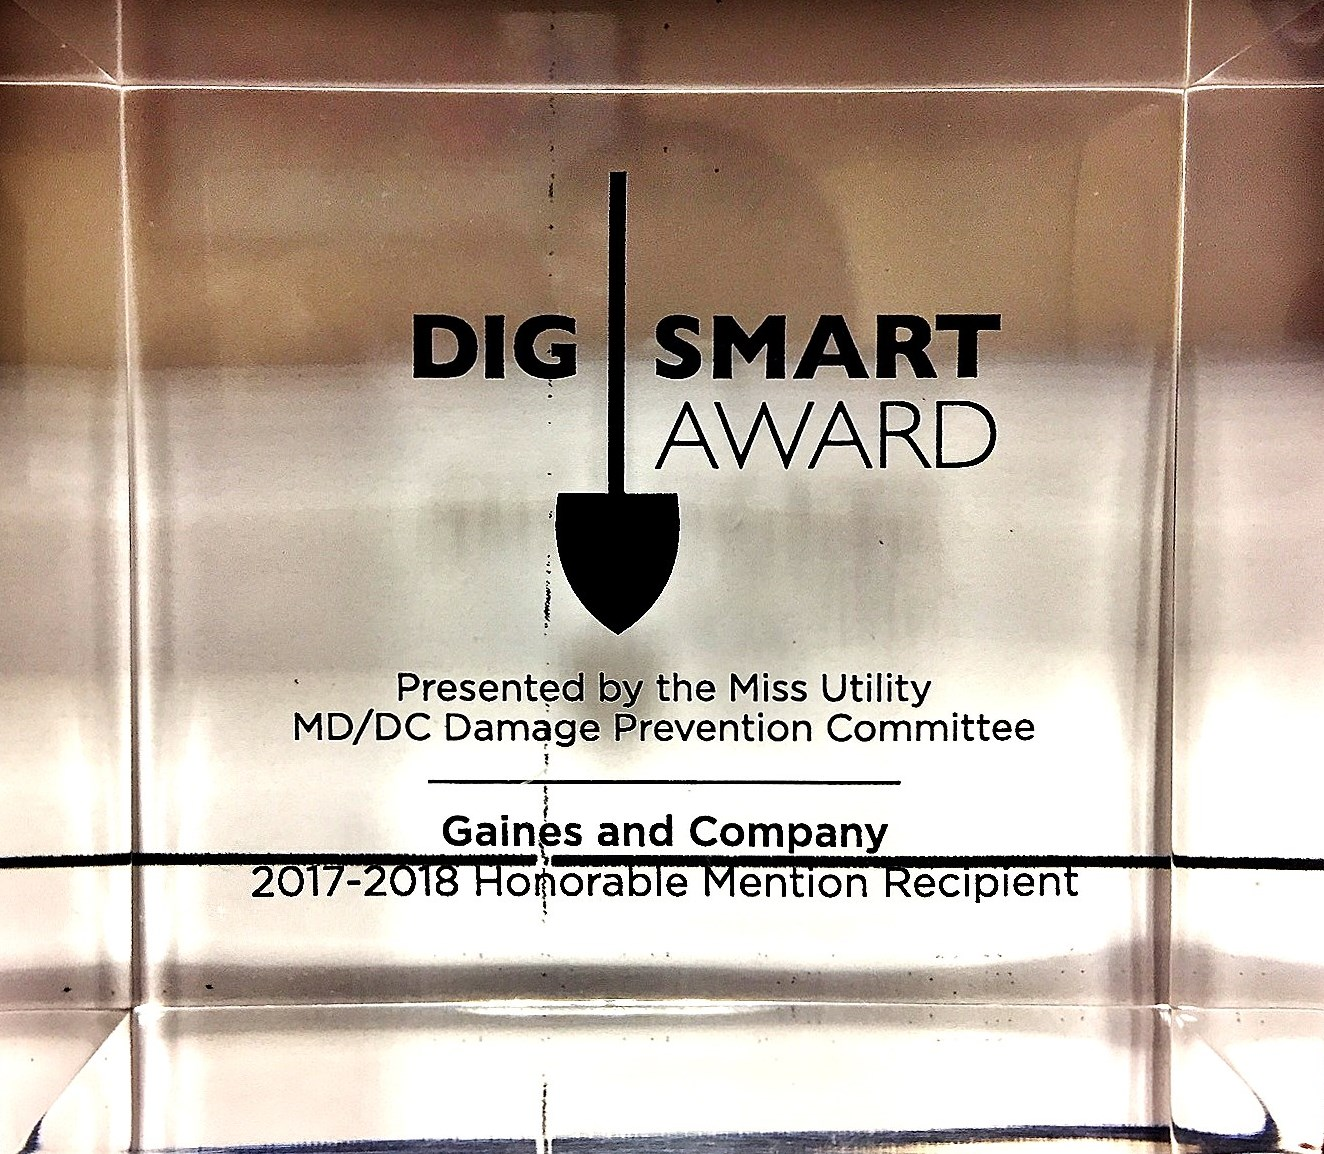 Gaines And Company Wins Dig Smart Award At 10th Annual Event Gaines And Company Site Development Little miss & good sir scanlations. gaines and company wins dig smart award